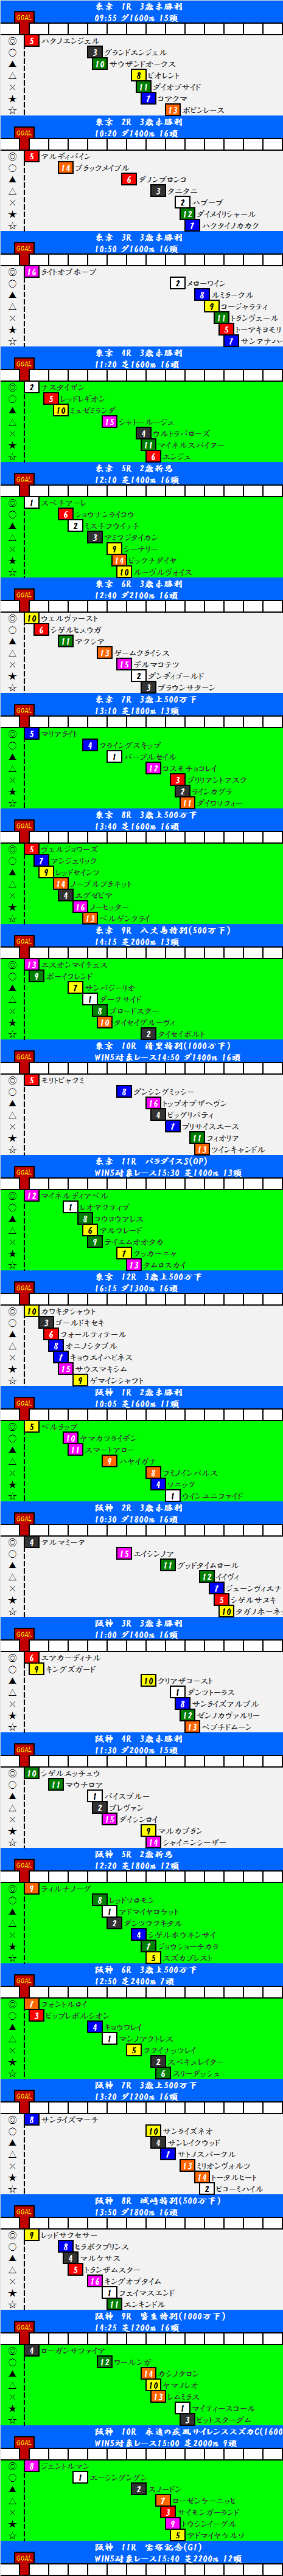 201406291.png